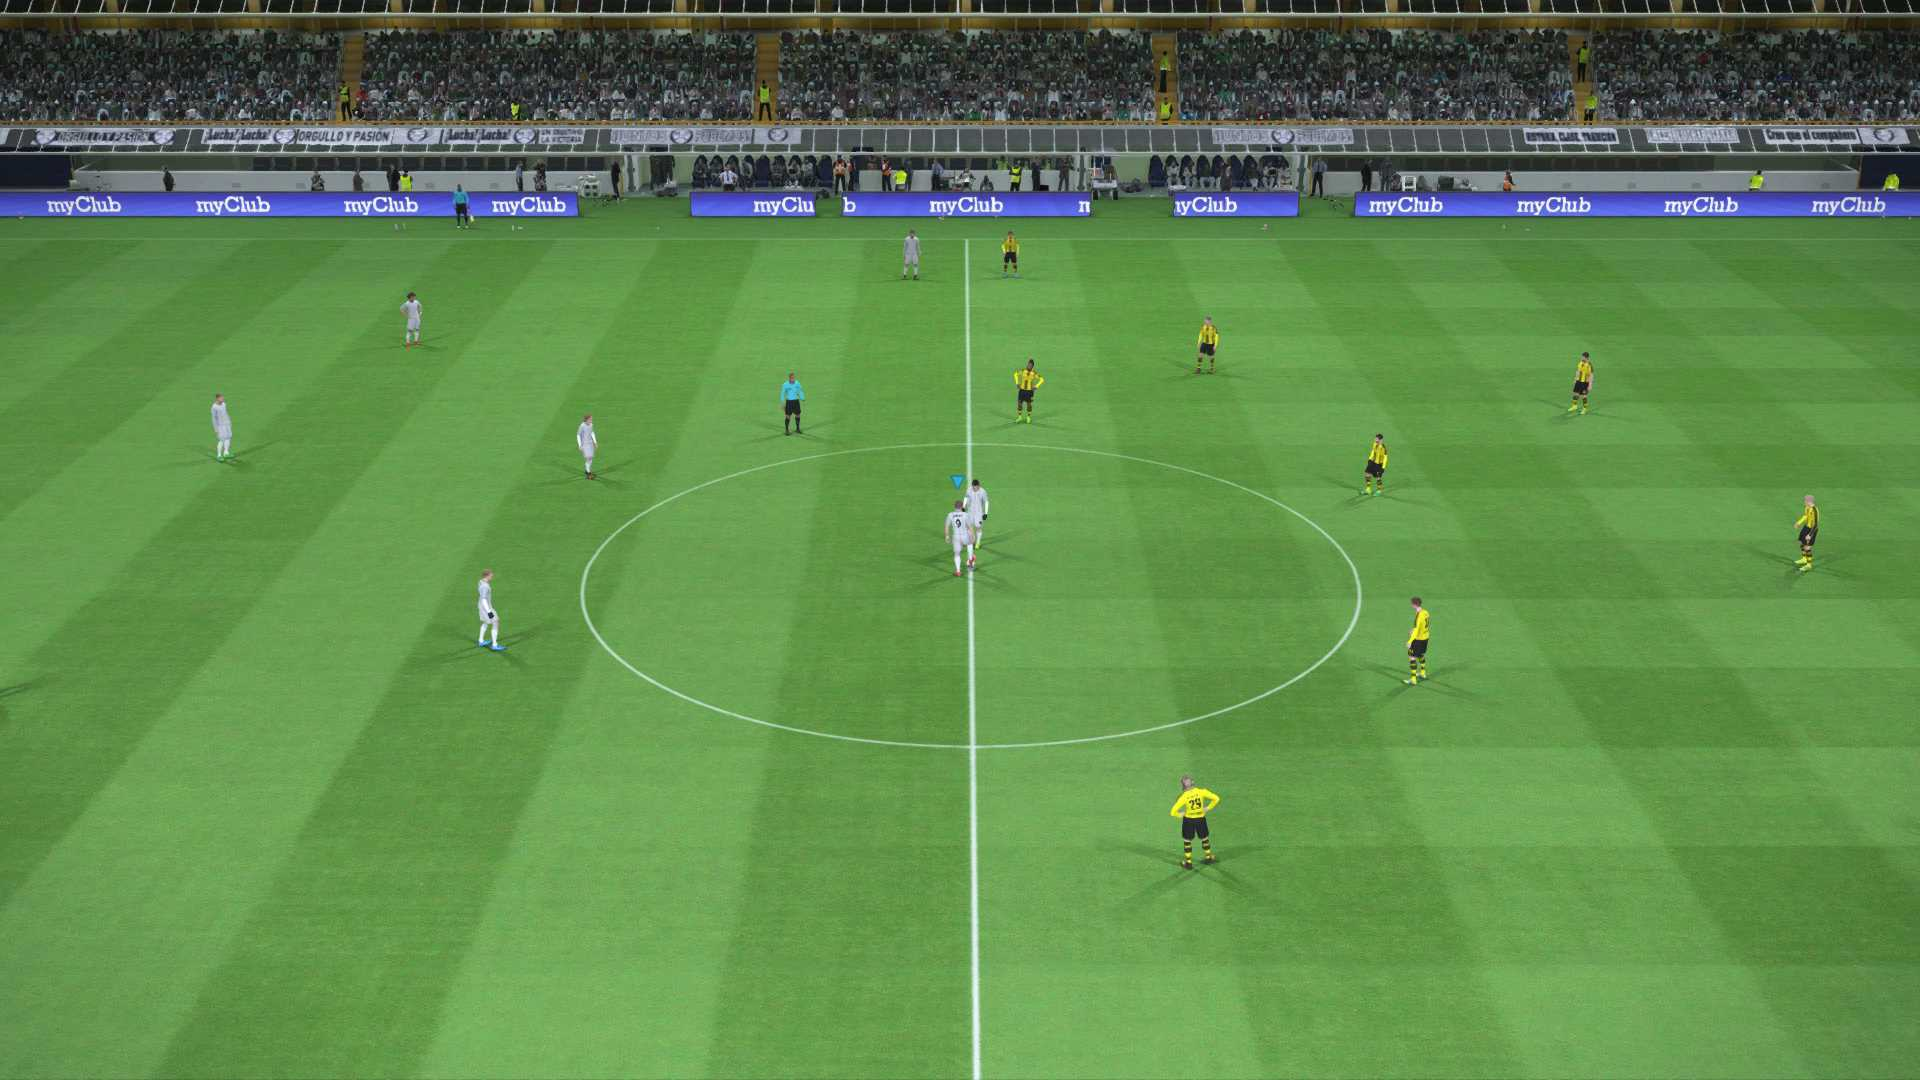 PES 2017 real vs dortmund